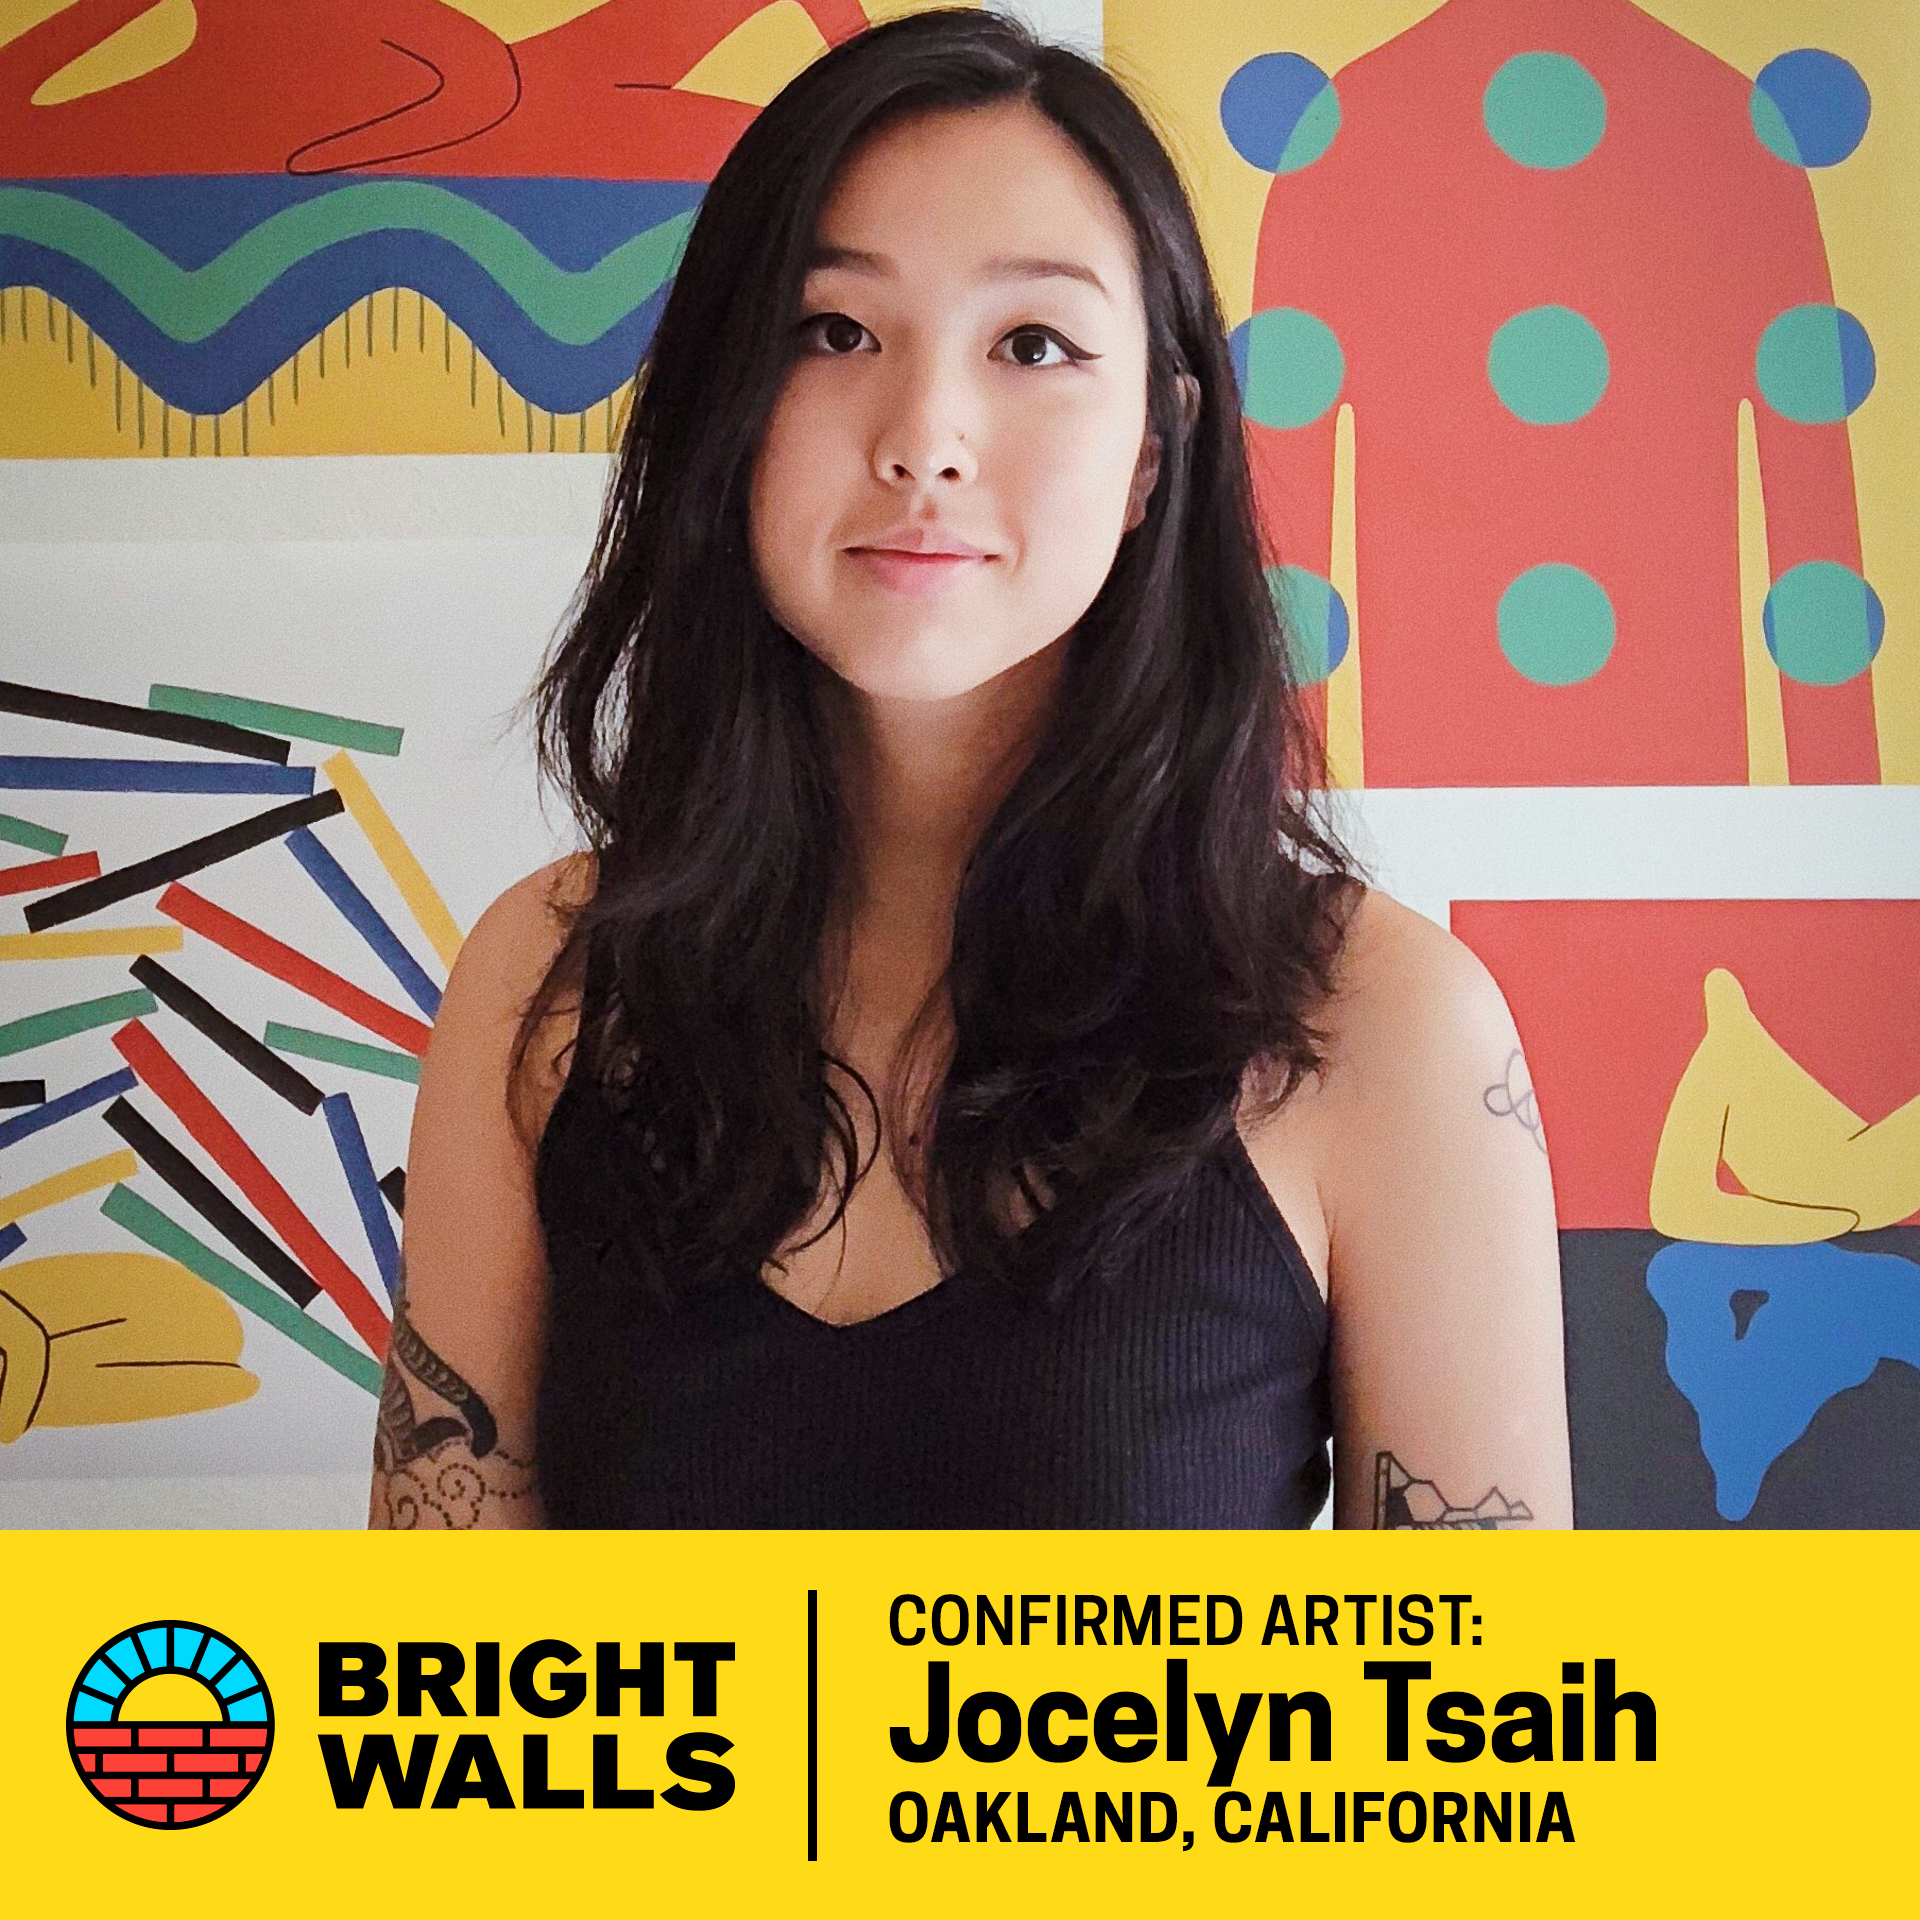 Jocelyn TsaihOakland, California - Jocelyn is a Taiwan-born, Shanghai-raised artist based out of Oakland, California. Her work is a reflection on human nature and the intangible aspects of life. She often features an ambiguous character meant to embody the spirit of beings as a whole.Jocelyn has a done work for a range of clients including Nickelodeon, New York Times, AirBnB, Adobe, Conde Nast, and GIPHY. Her whimsical character illustrations have been featured in everything from newspaper articles to music videos and large-scale murals.